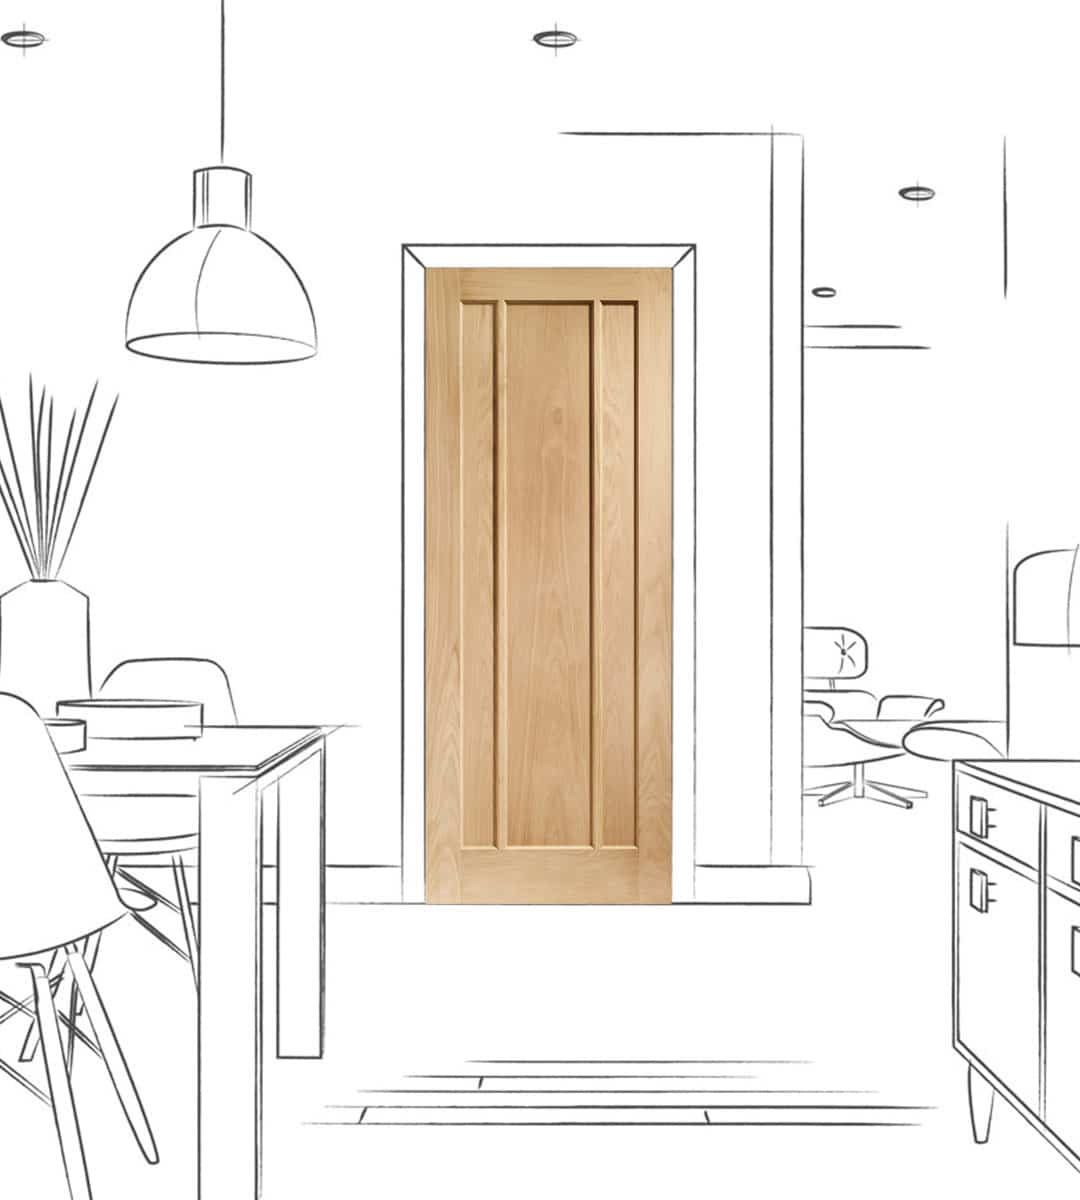 worcester oak internal kitchen door